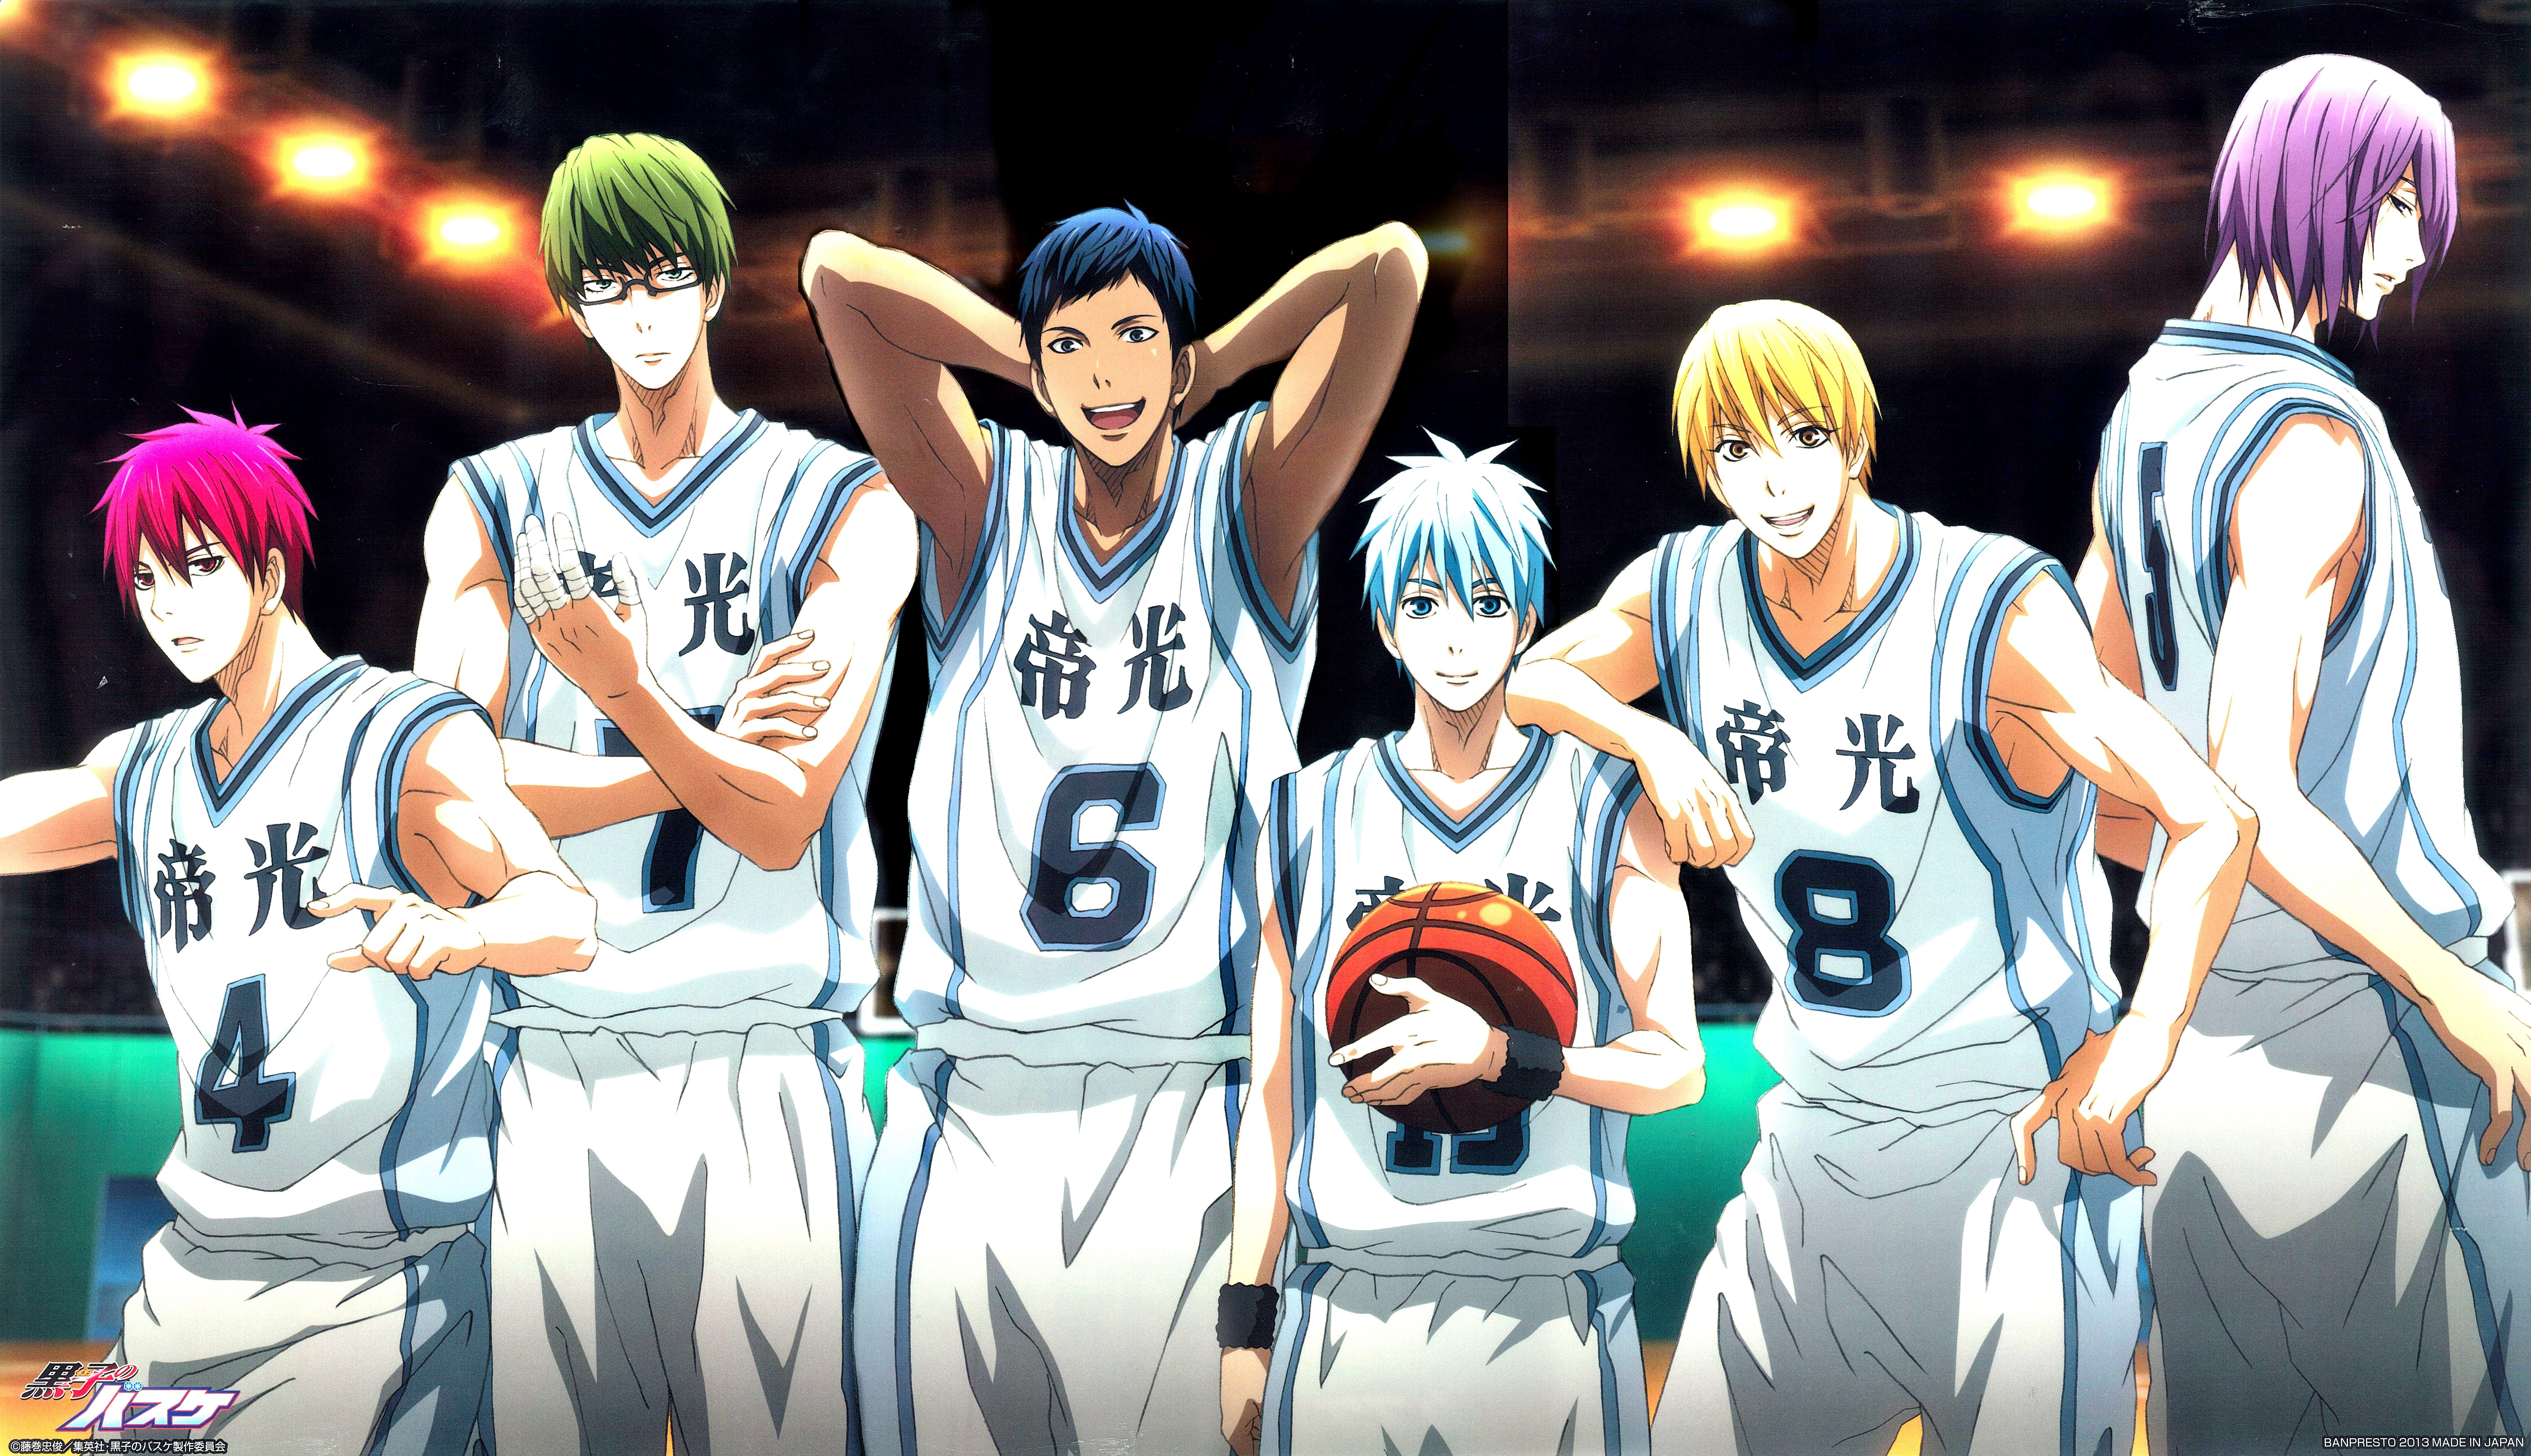 10,000 Anime Fans Voted for the Fictional Schools They Want to Study At haruhichan.com Teiko Junior High Kuroko's Basketball